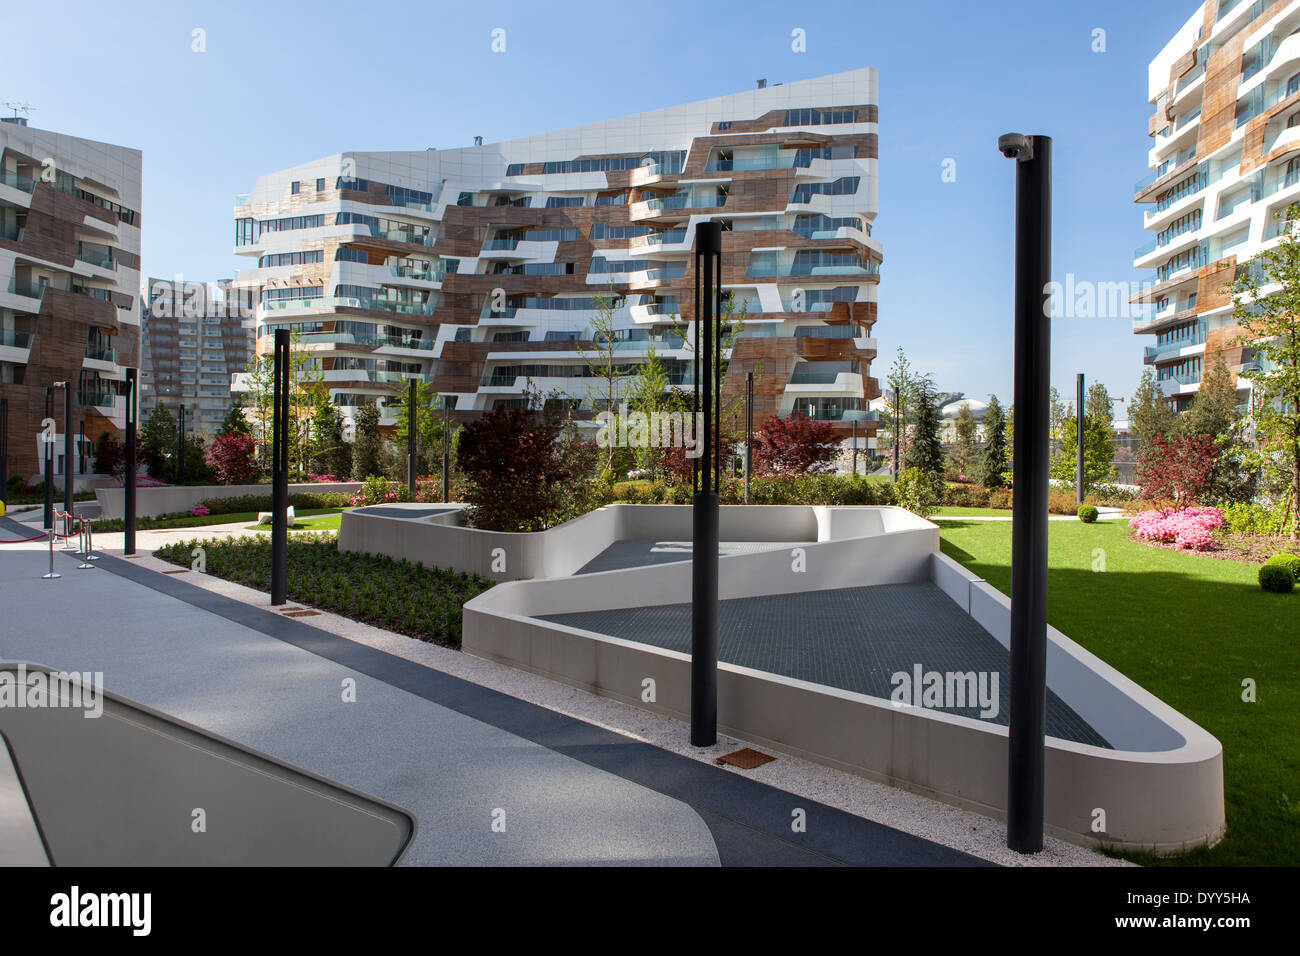 Zaha Hadid Residences at Citylife, a new residential and business district in Milan, Italy. - Stock Image